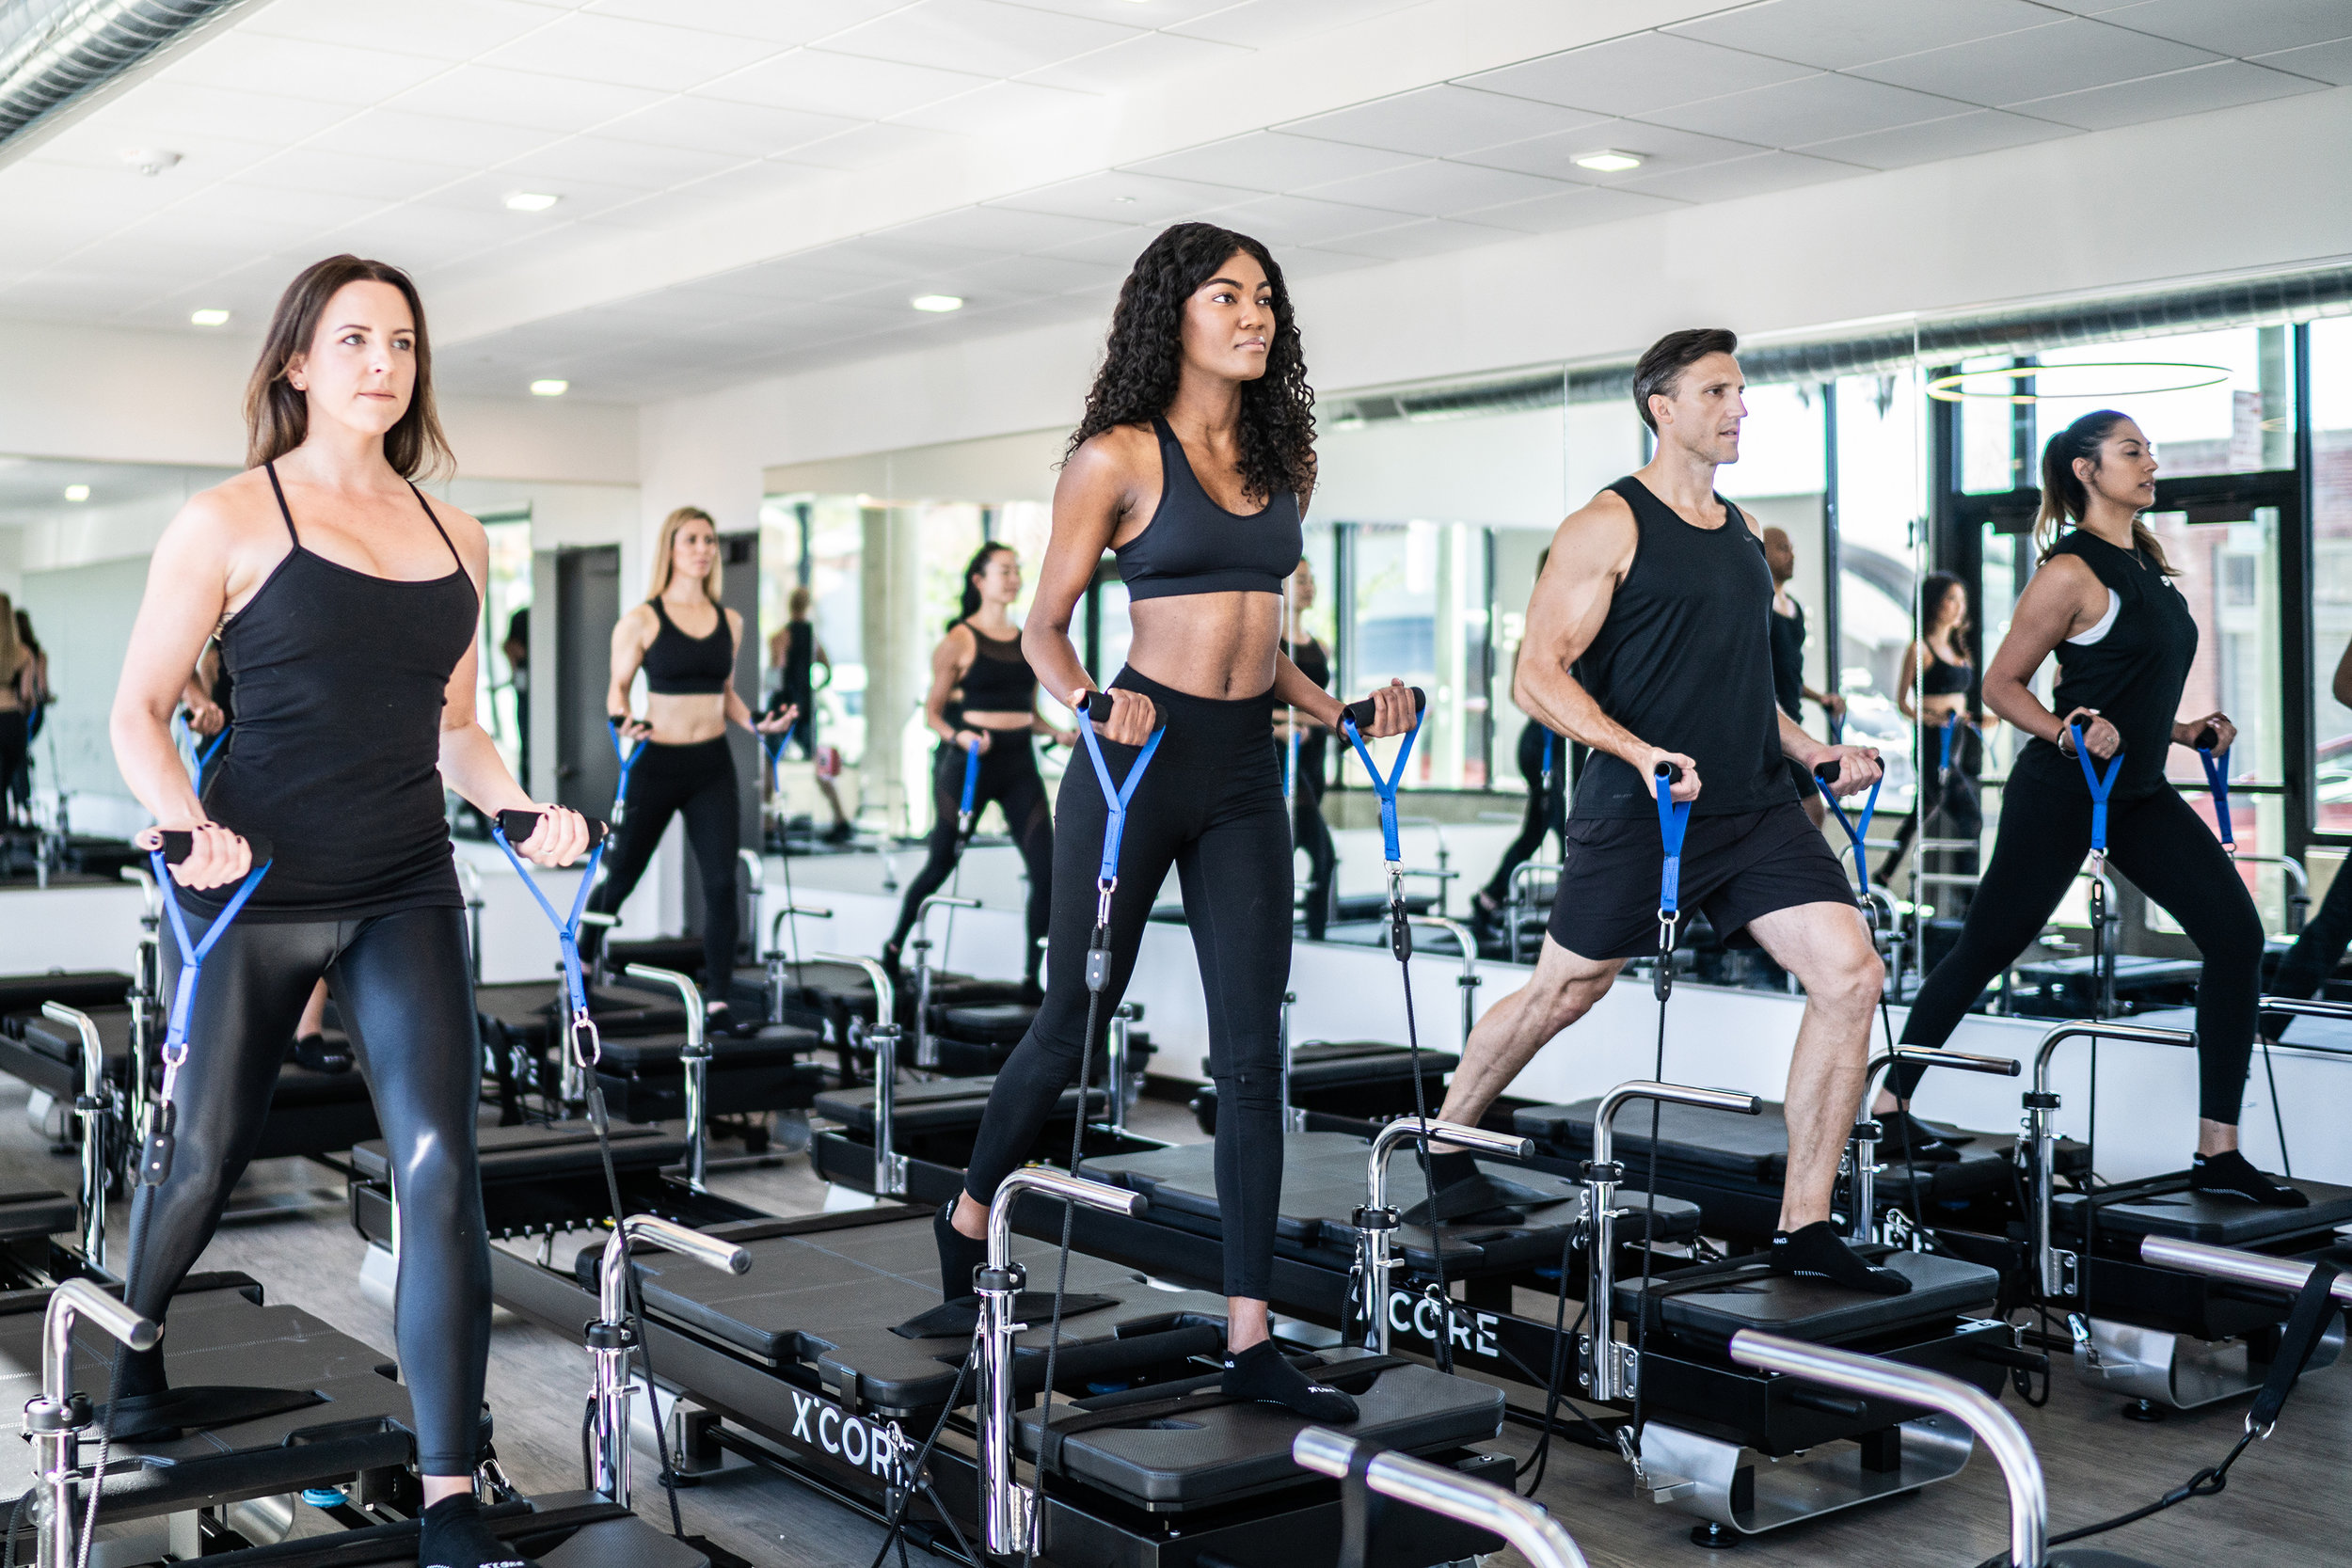 STRENGTH - X-BURN is our coveted high intensity pilates class that will strengthen, lengthen and tone your muscles in just 40 minutes.LEARN MORE